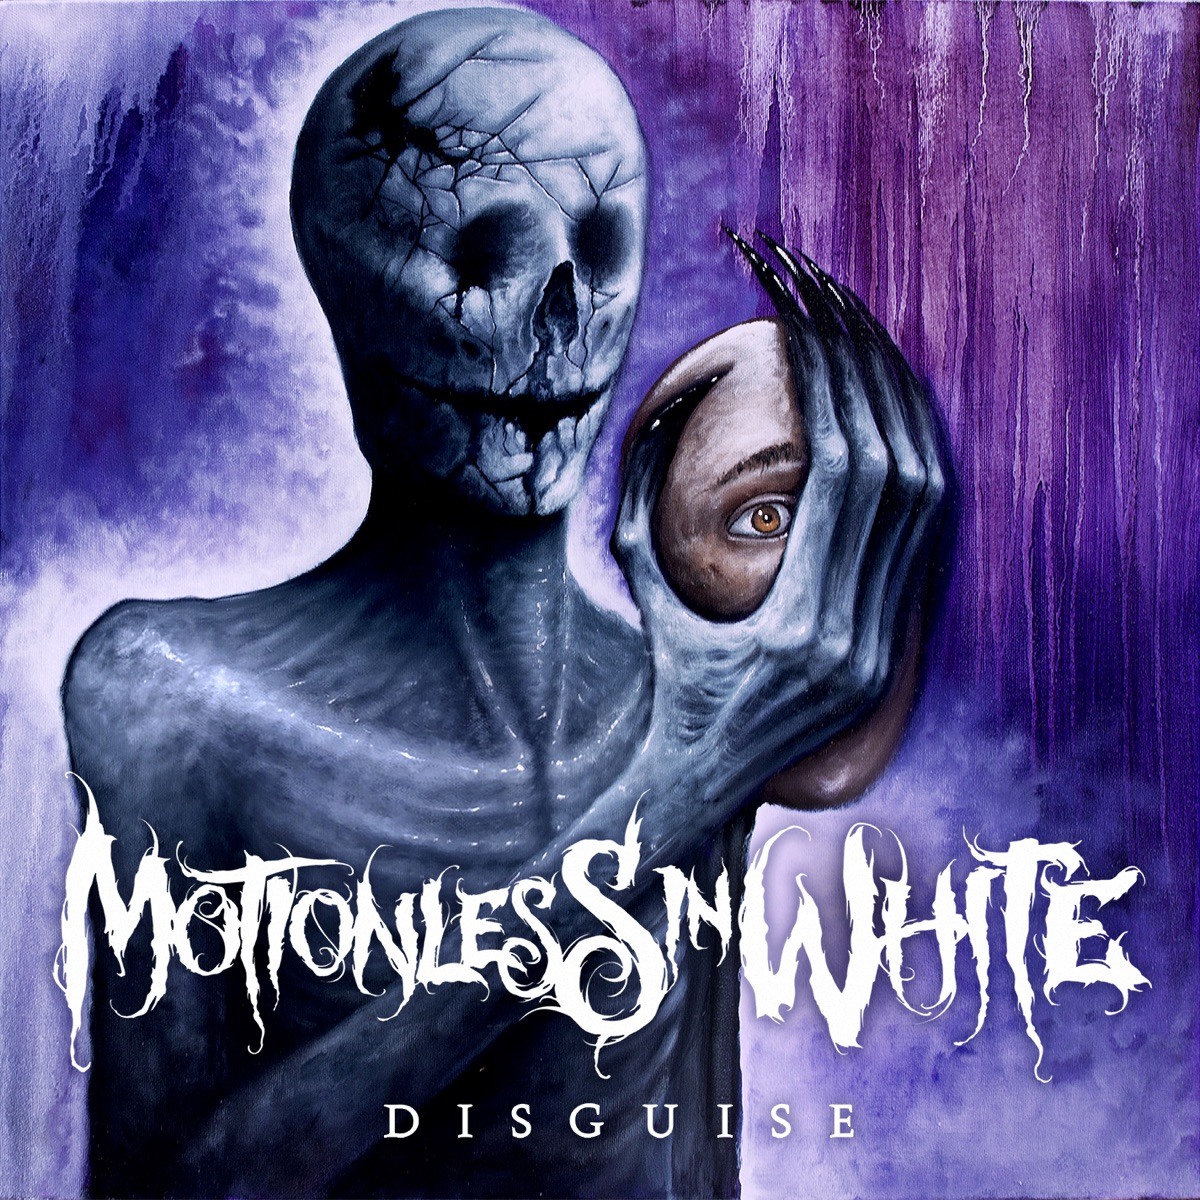 Disguise Motionless In White CD cover